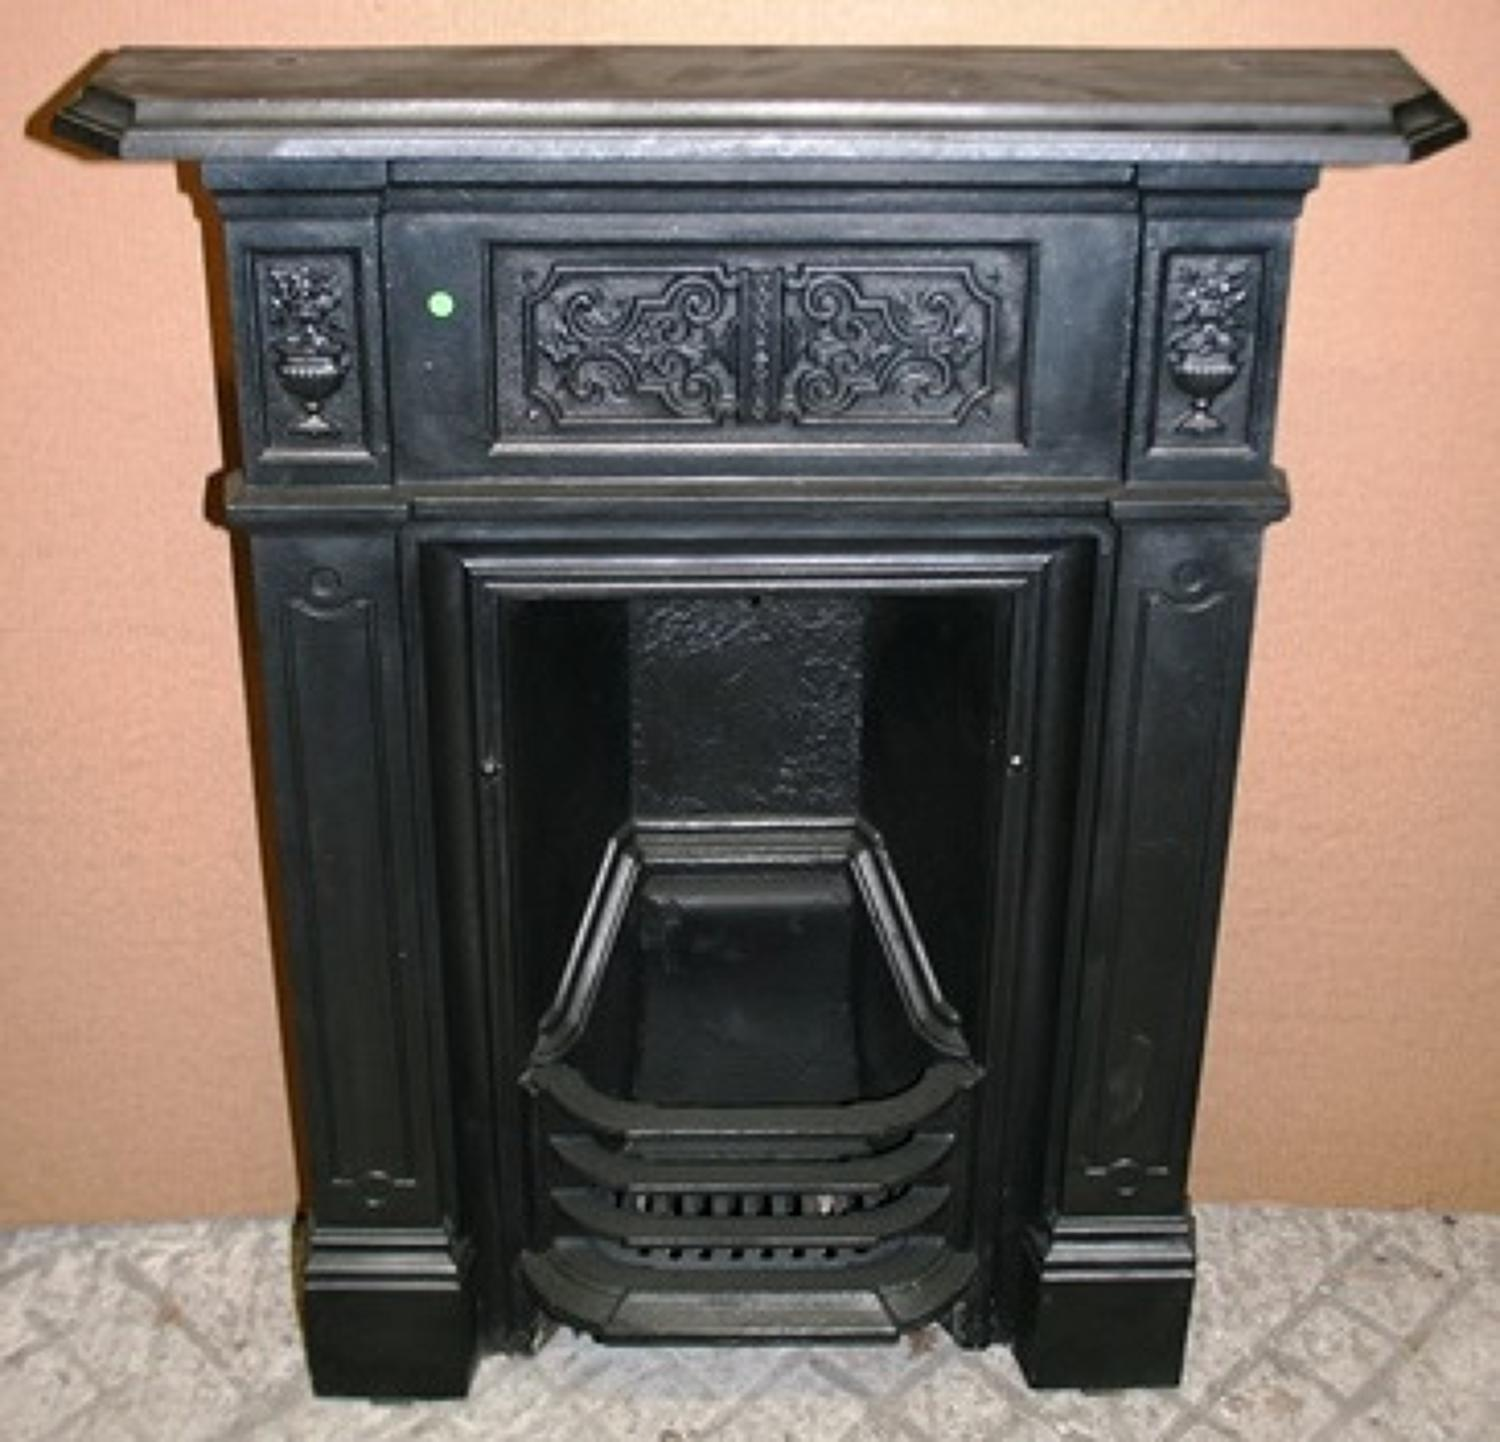 FC0012 A Victorian Cast Iron Combination Bedroom Fireplace